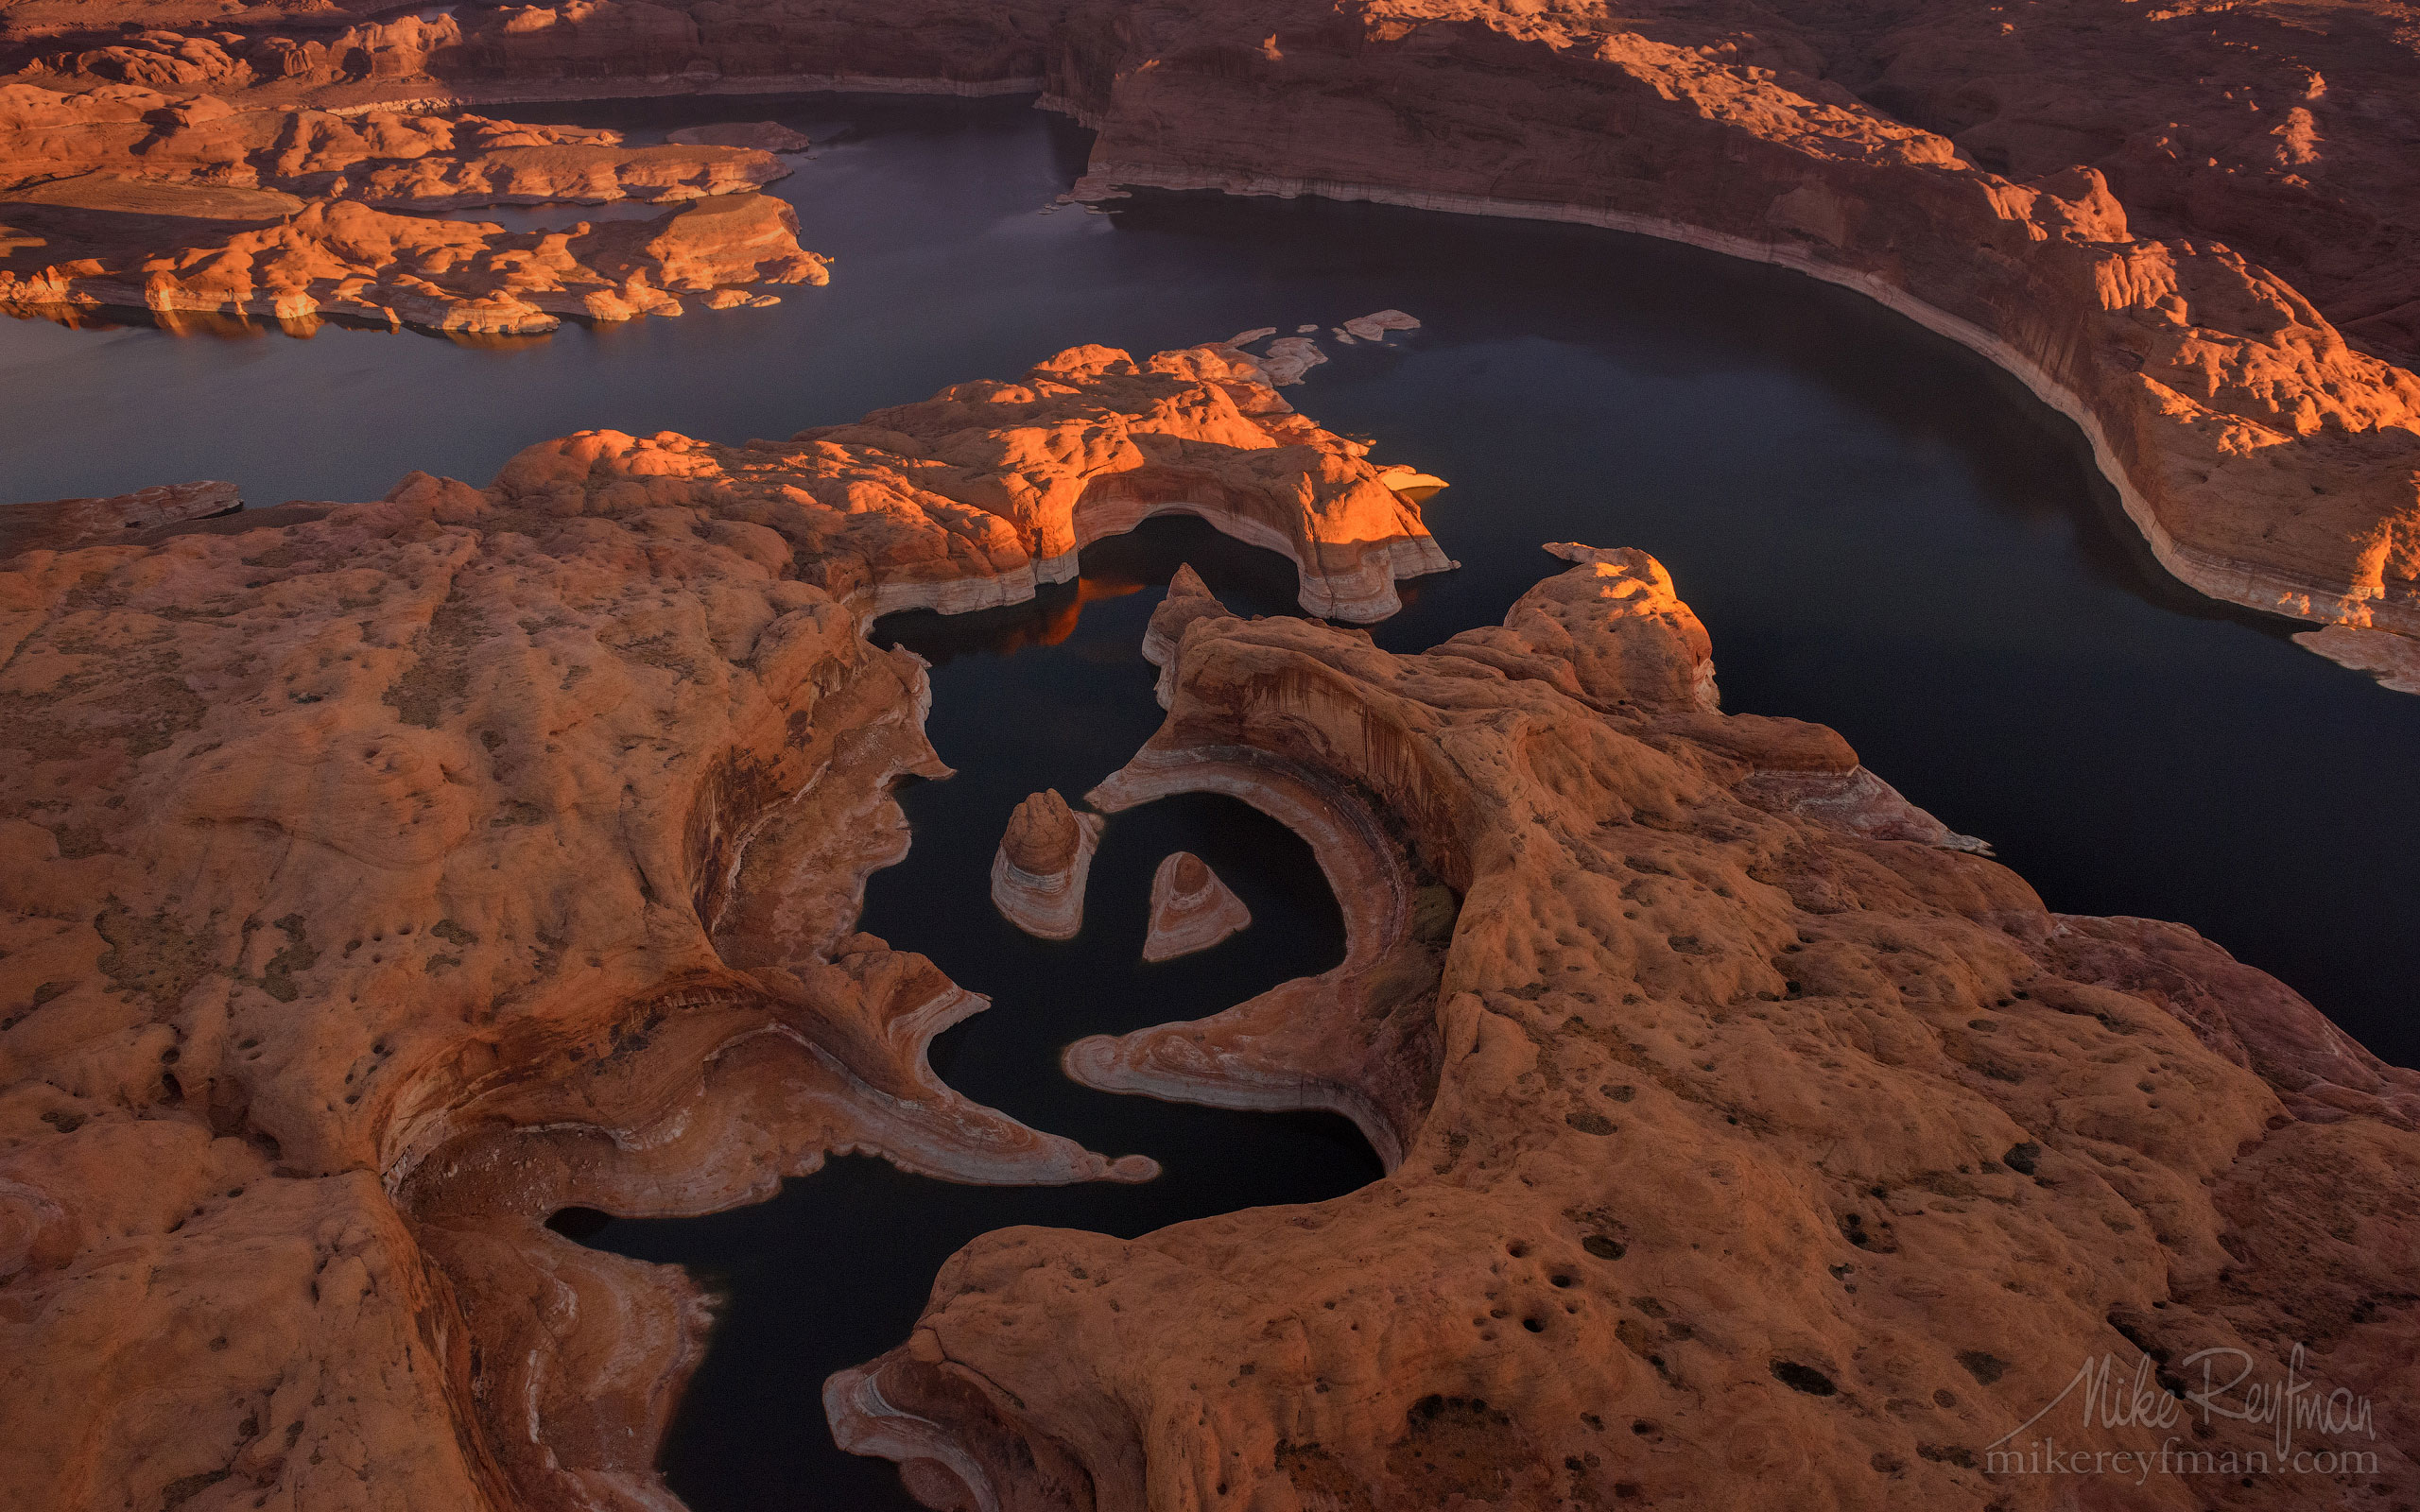 Reflection Canyon. Colorado River, Lake Powell, Glen Canyon NRA. Uta/Arizona, USA. Aerial 111-LP3_D1B9999_361.jpg - Lake Powell, Glen Canyon NAR. Colorado and Sun Juan Rivers. Utah/Arizona, USA  - Mike Reyfman Photography